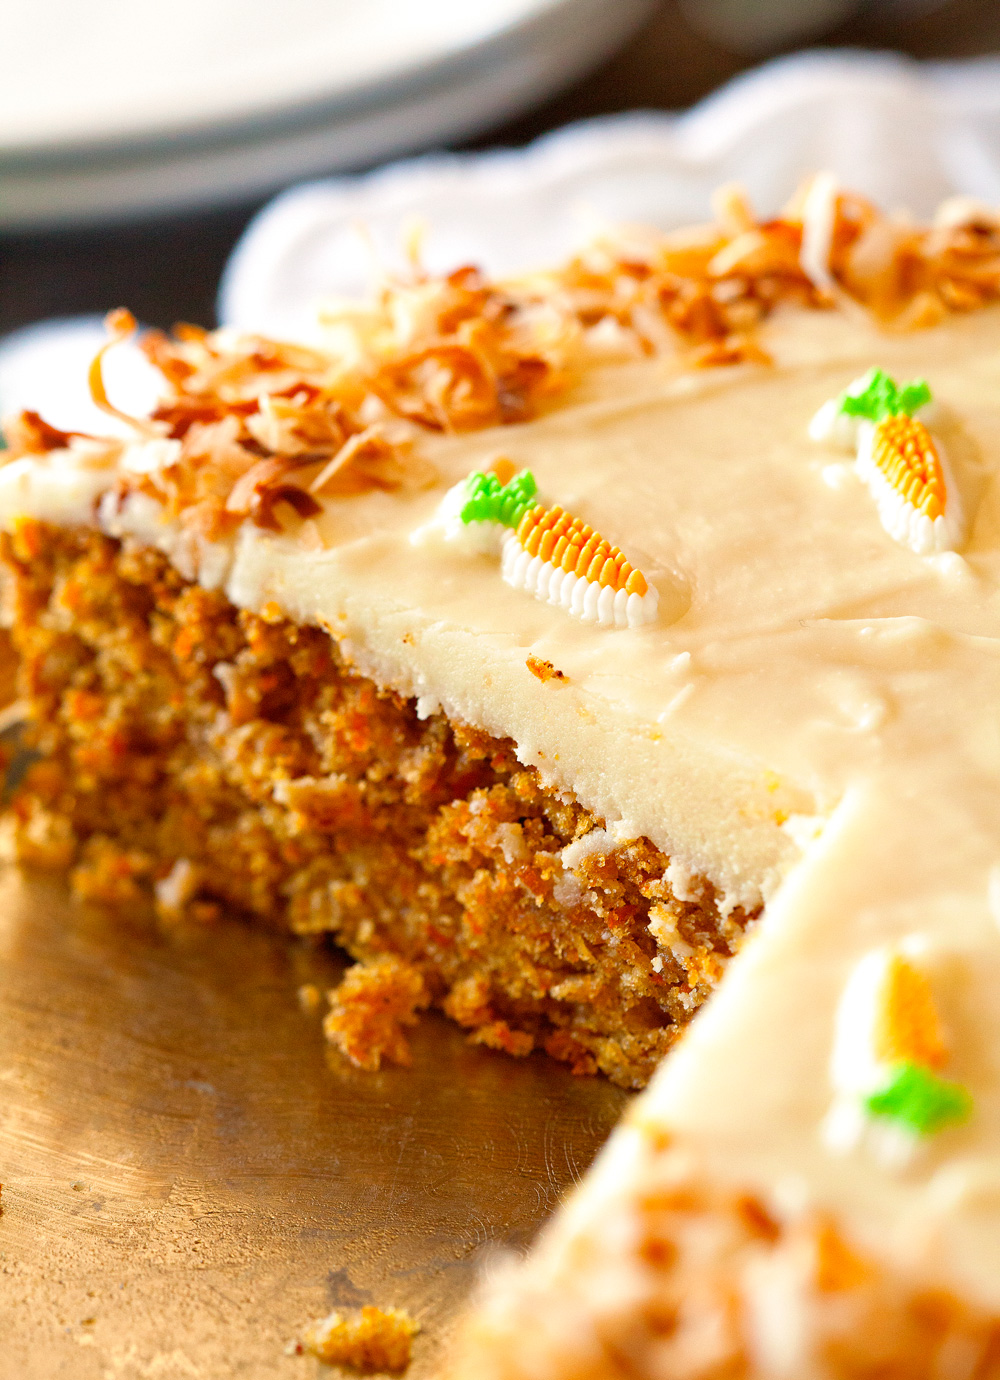 Carrot cake recipe with cheese icing